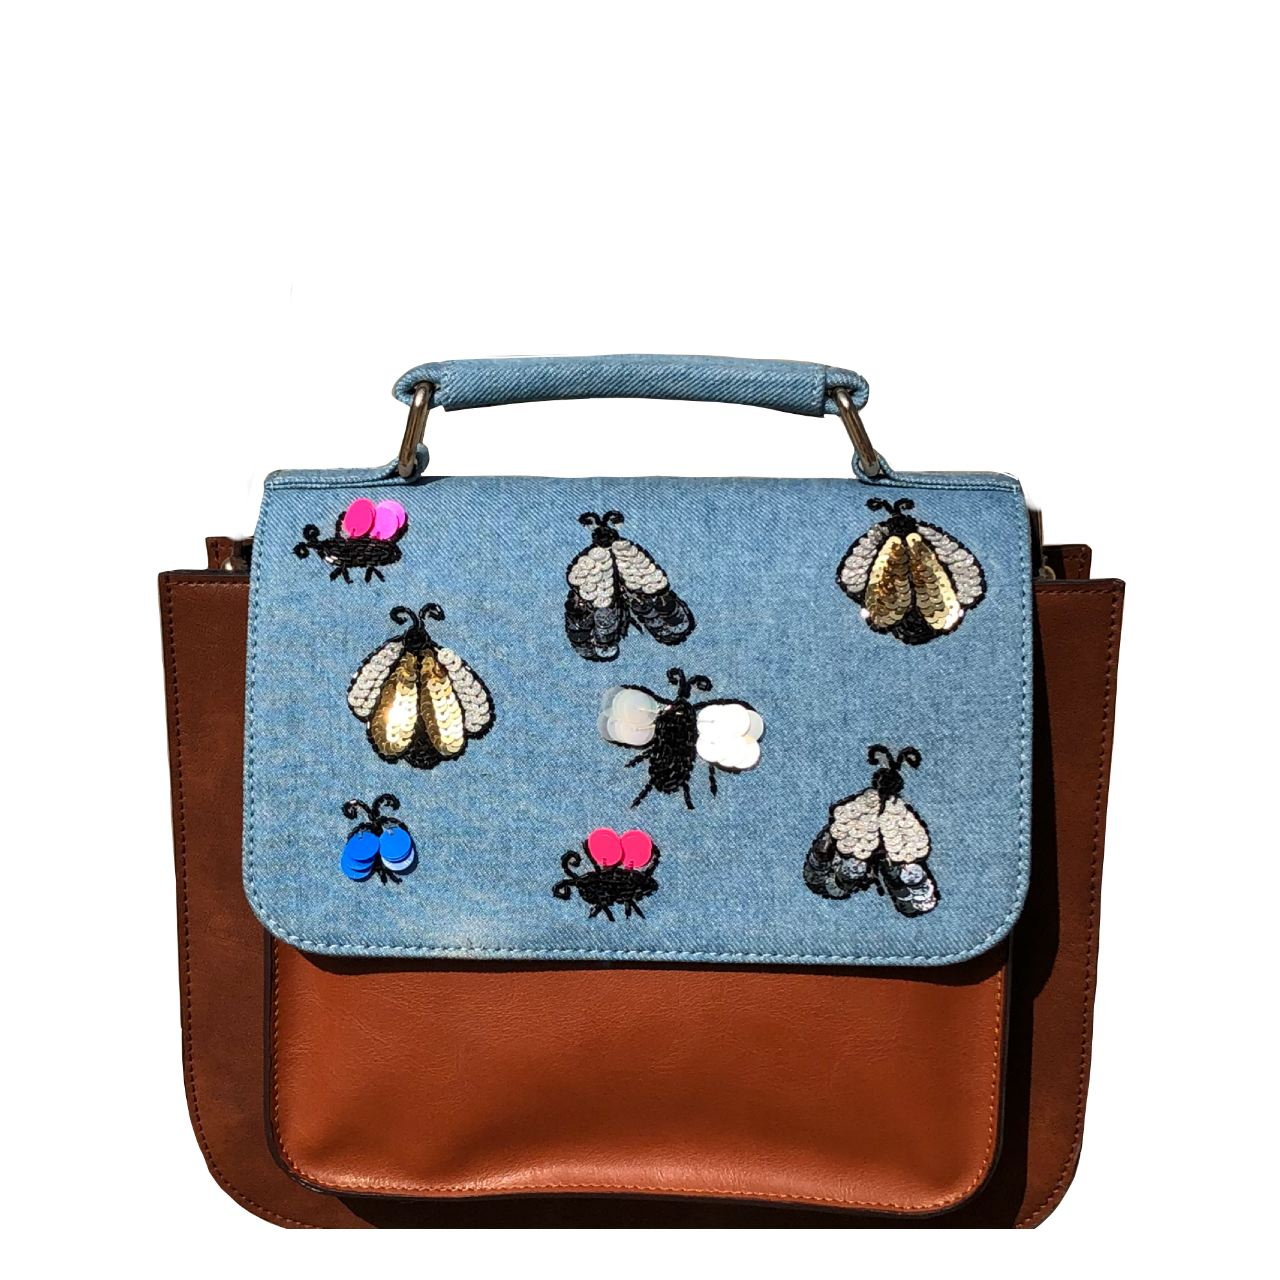 Outlet Discount Authentic Discount Brand New Unisex Simitri Designs Tan Beetle Tote Clearance Pictures V6w5oN